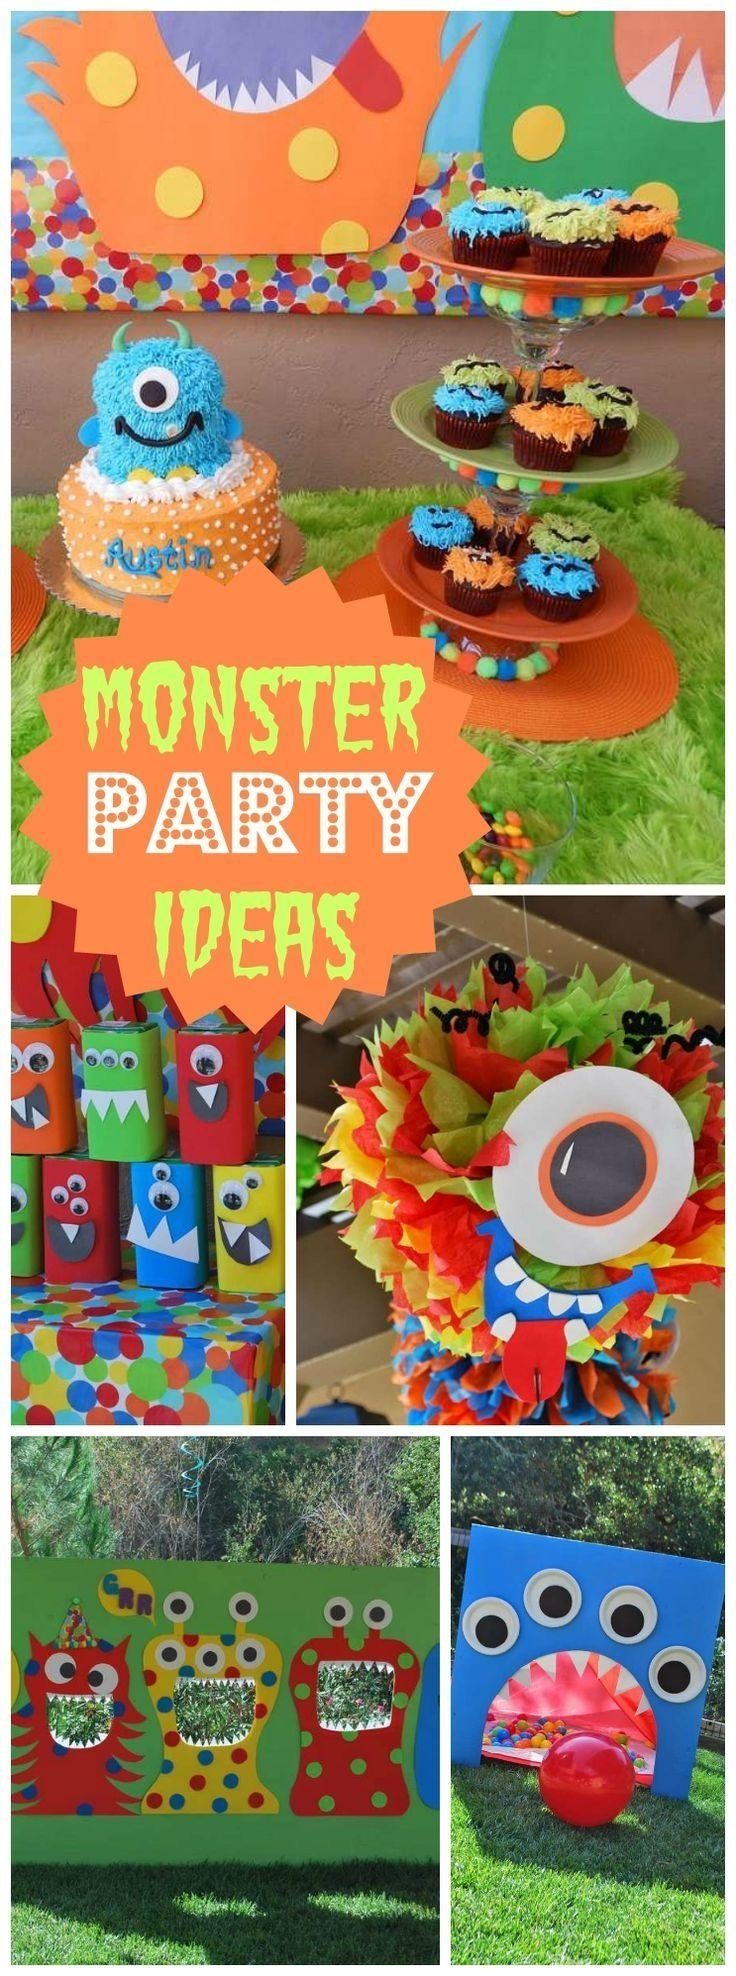 10 Fashionable First Birthday Party Ideas Pinterest 212 best monster party ideas images on pinterest monster party 3 2020